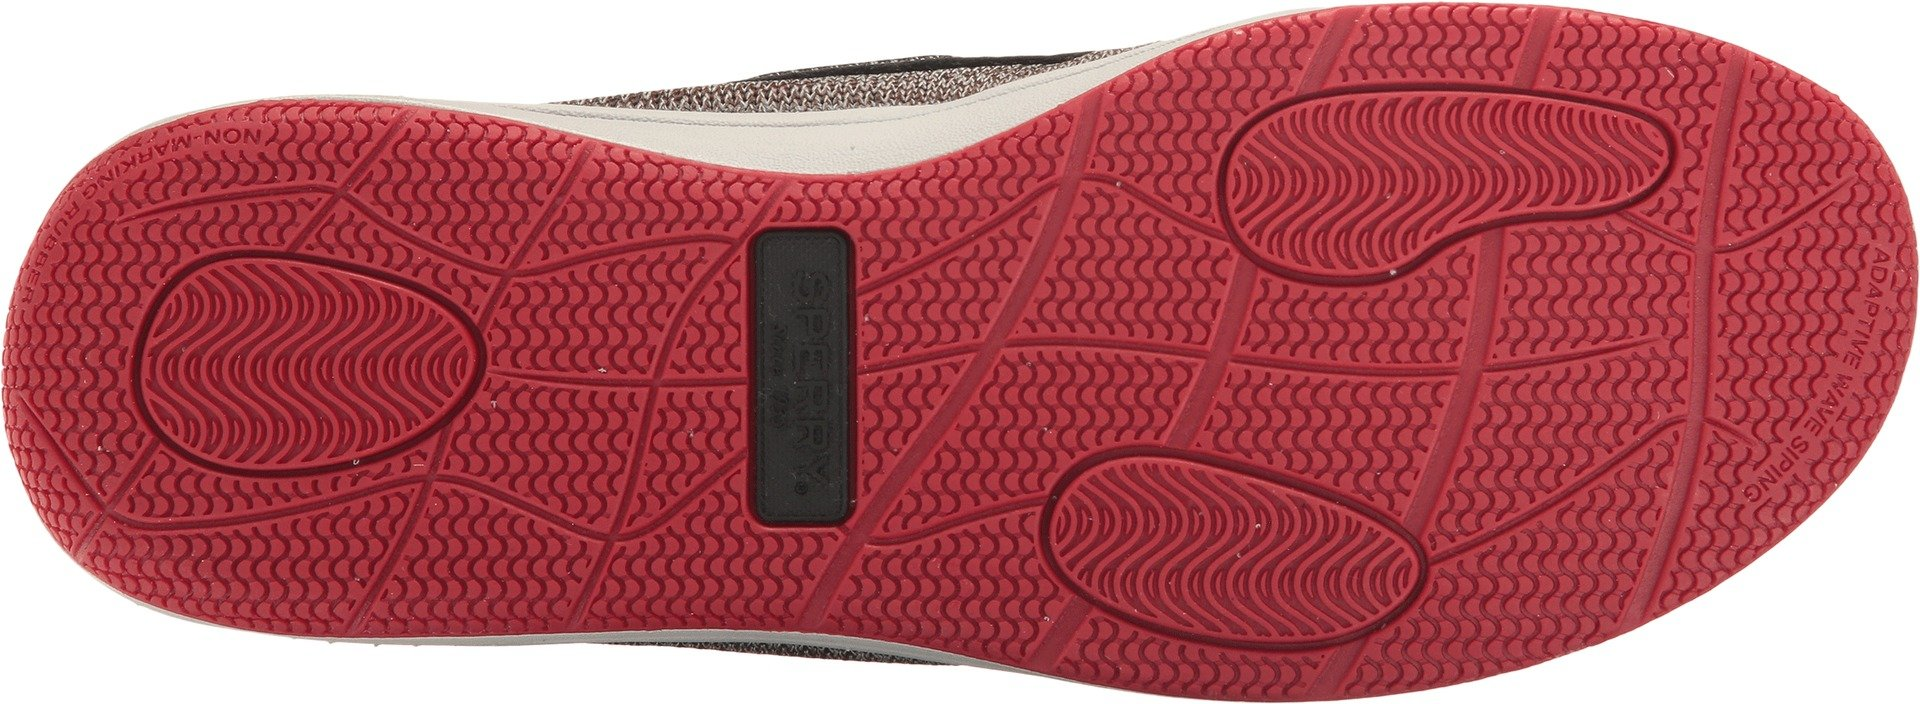 Sperry Top-Sider Gamefish 3-Eye Knit Boat Shoe